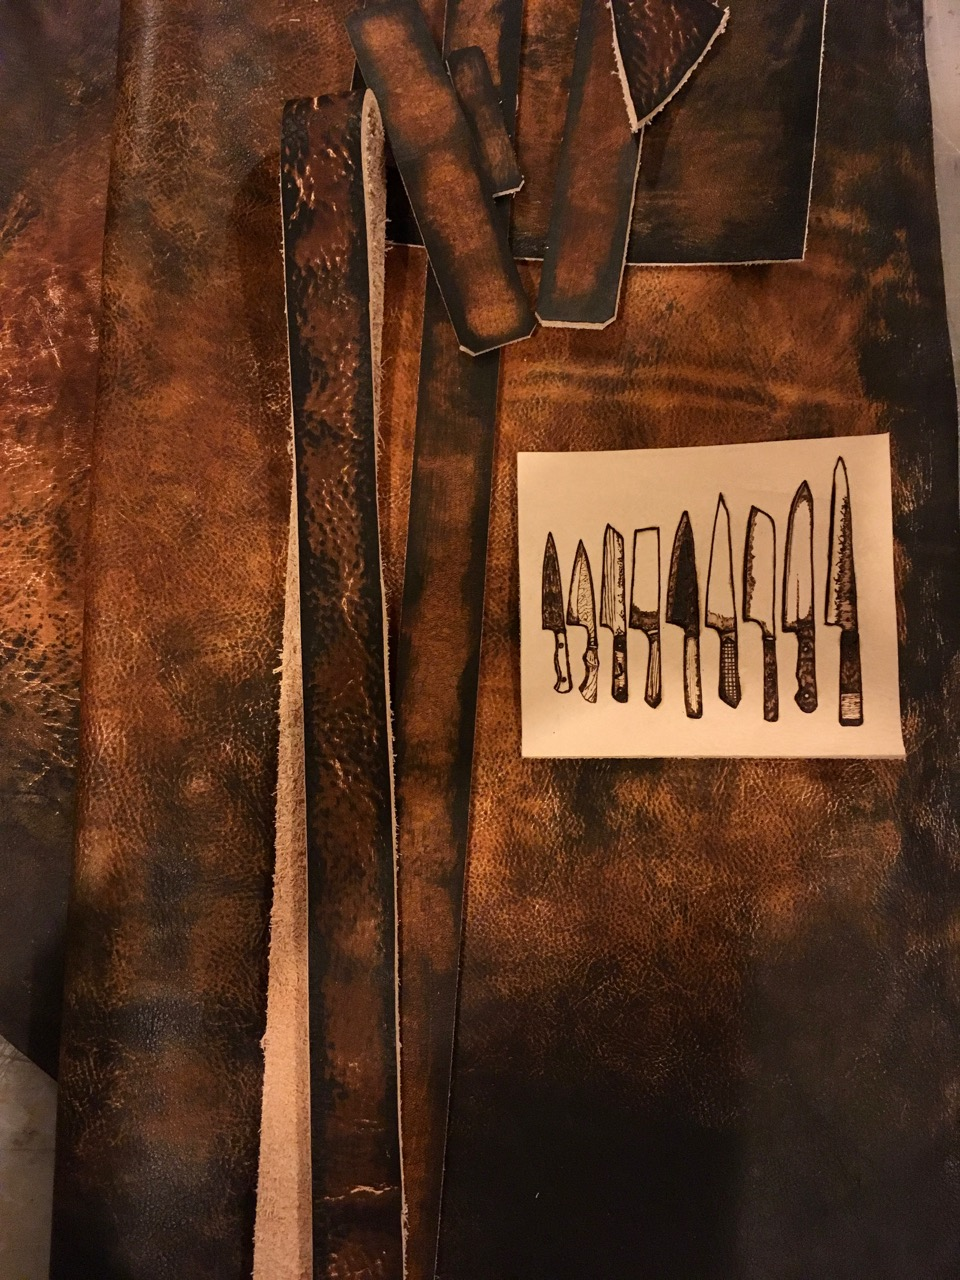 Leather apron for the chef by Linny Kenney